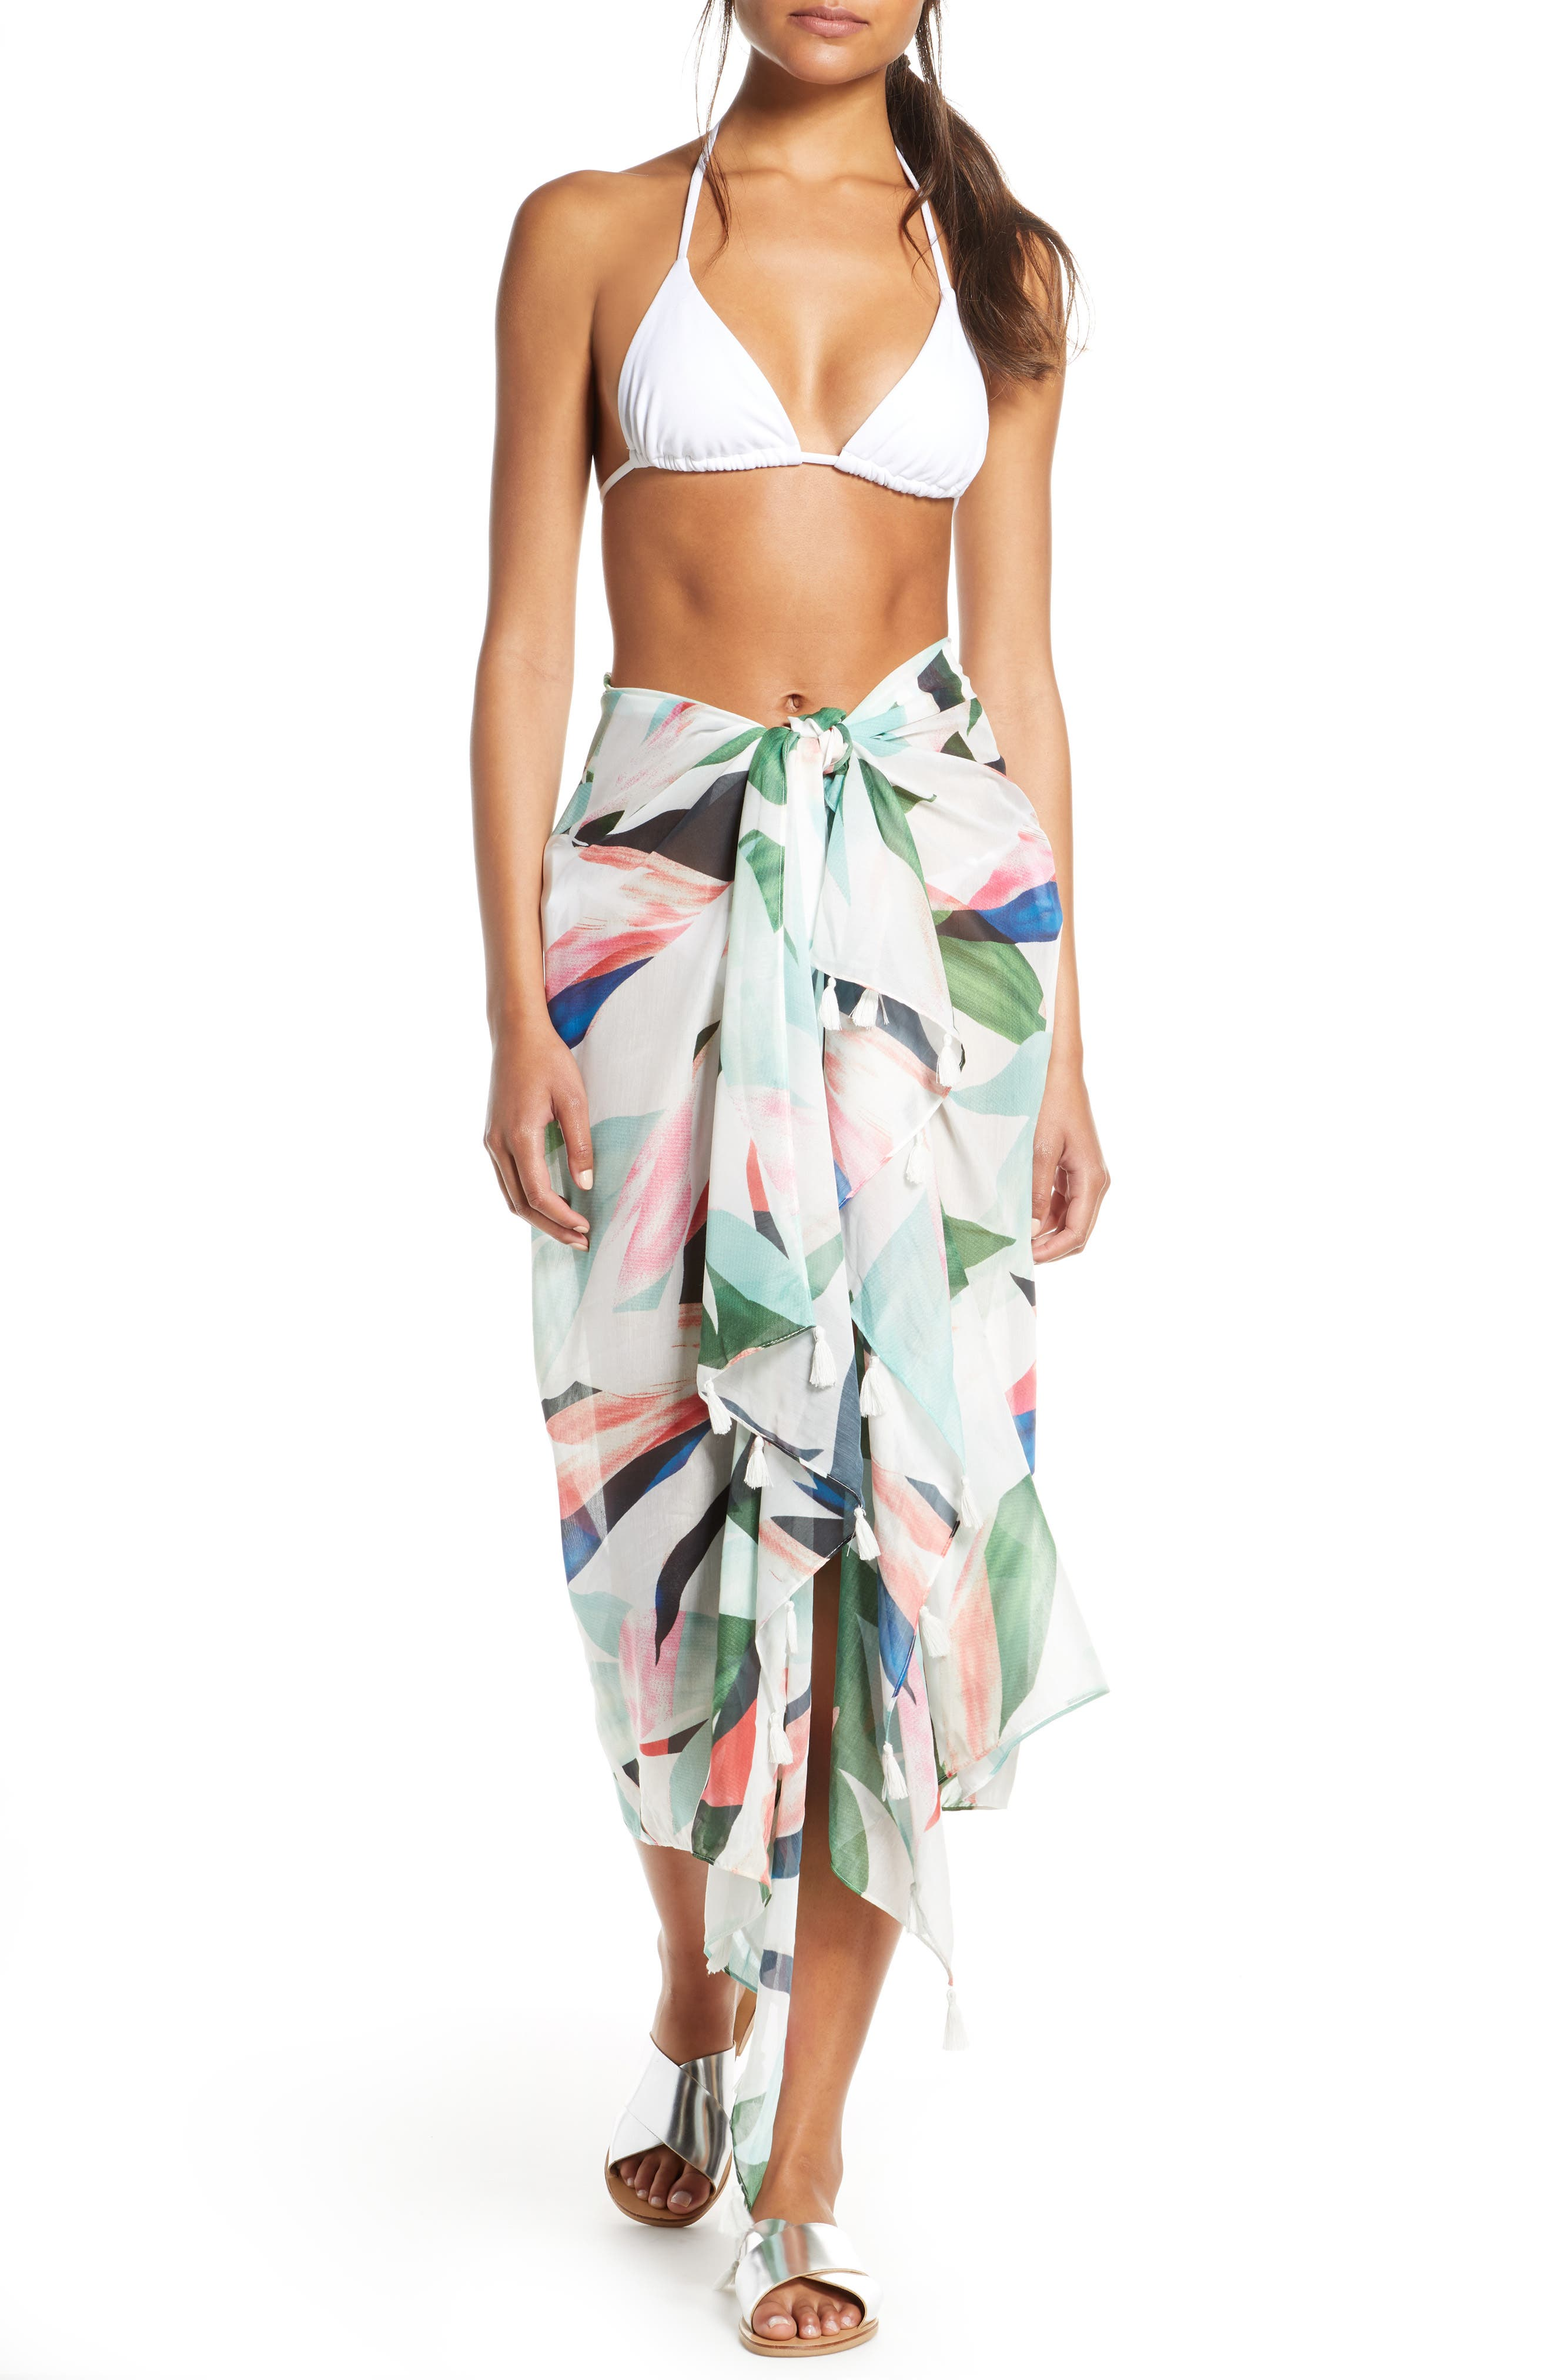 Pool To Party Birds Of Paradise Cover-Up Sarong, Size One Size - Ivory